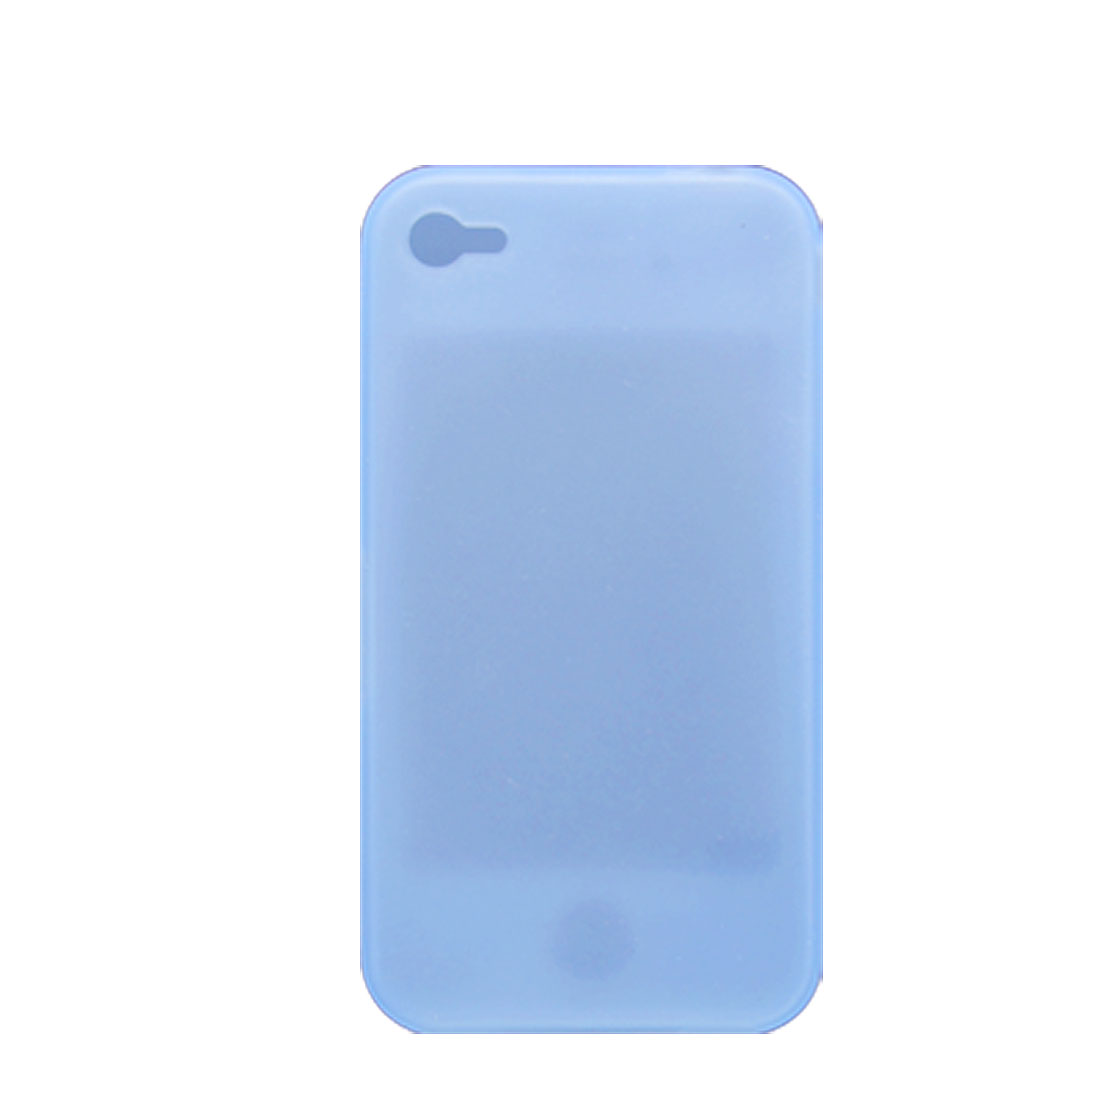 Light Blue Soft Silicone Skin Case for Apple iPhone 4 4G